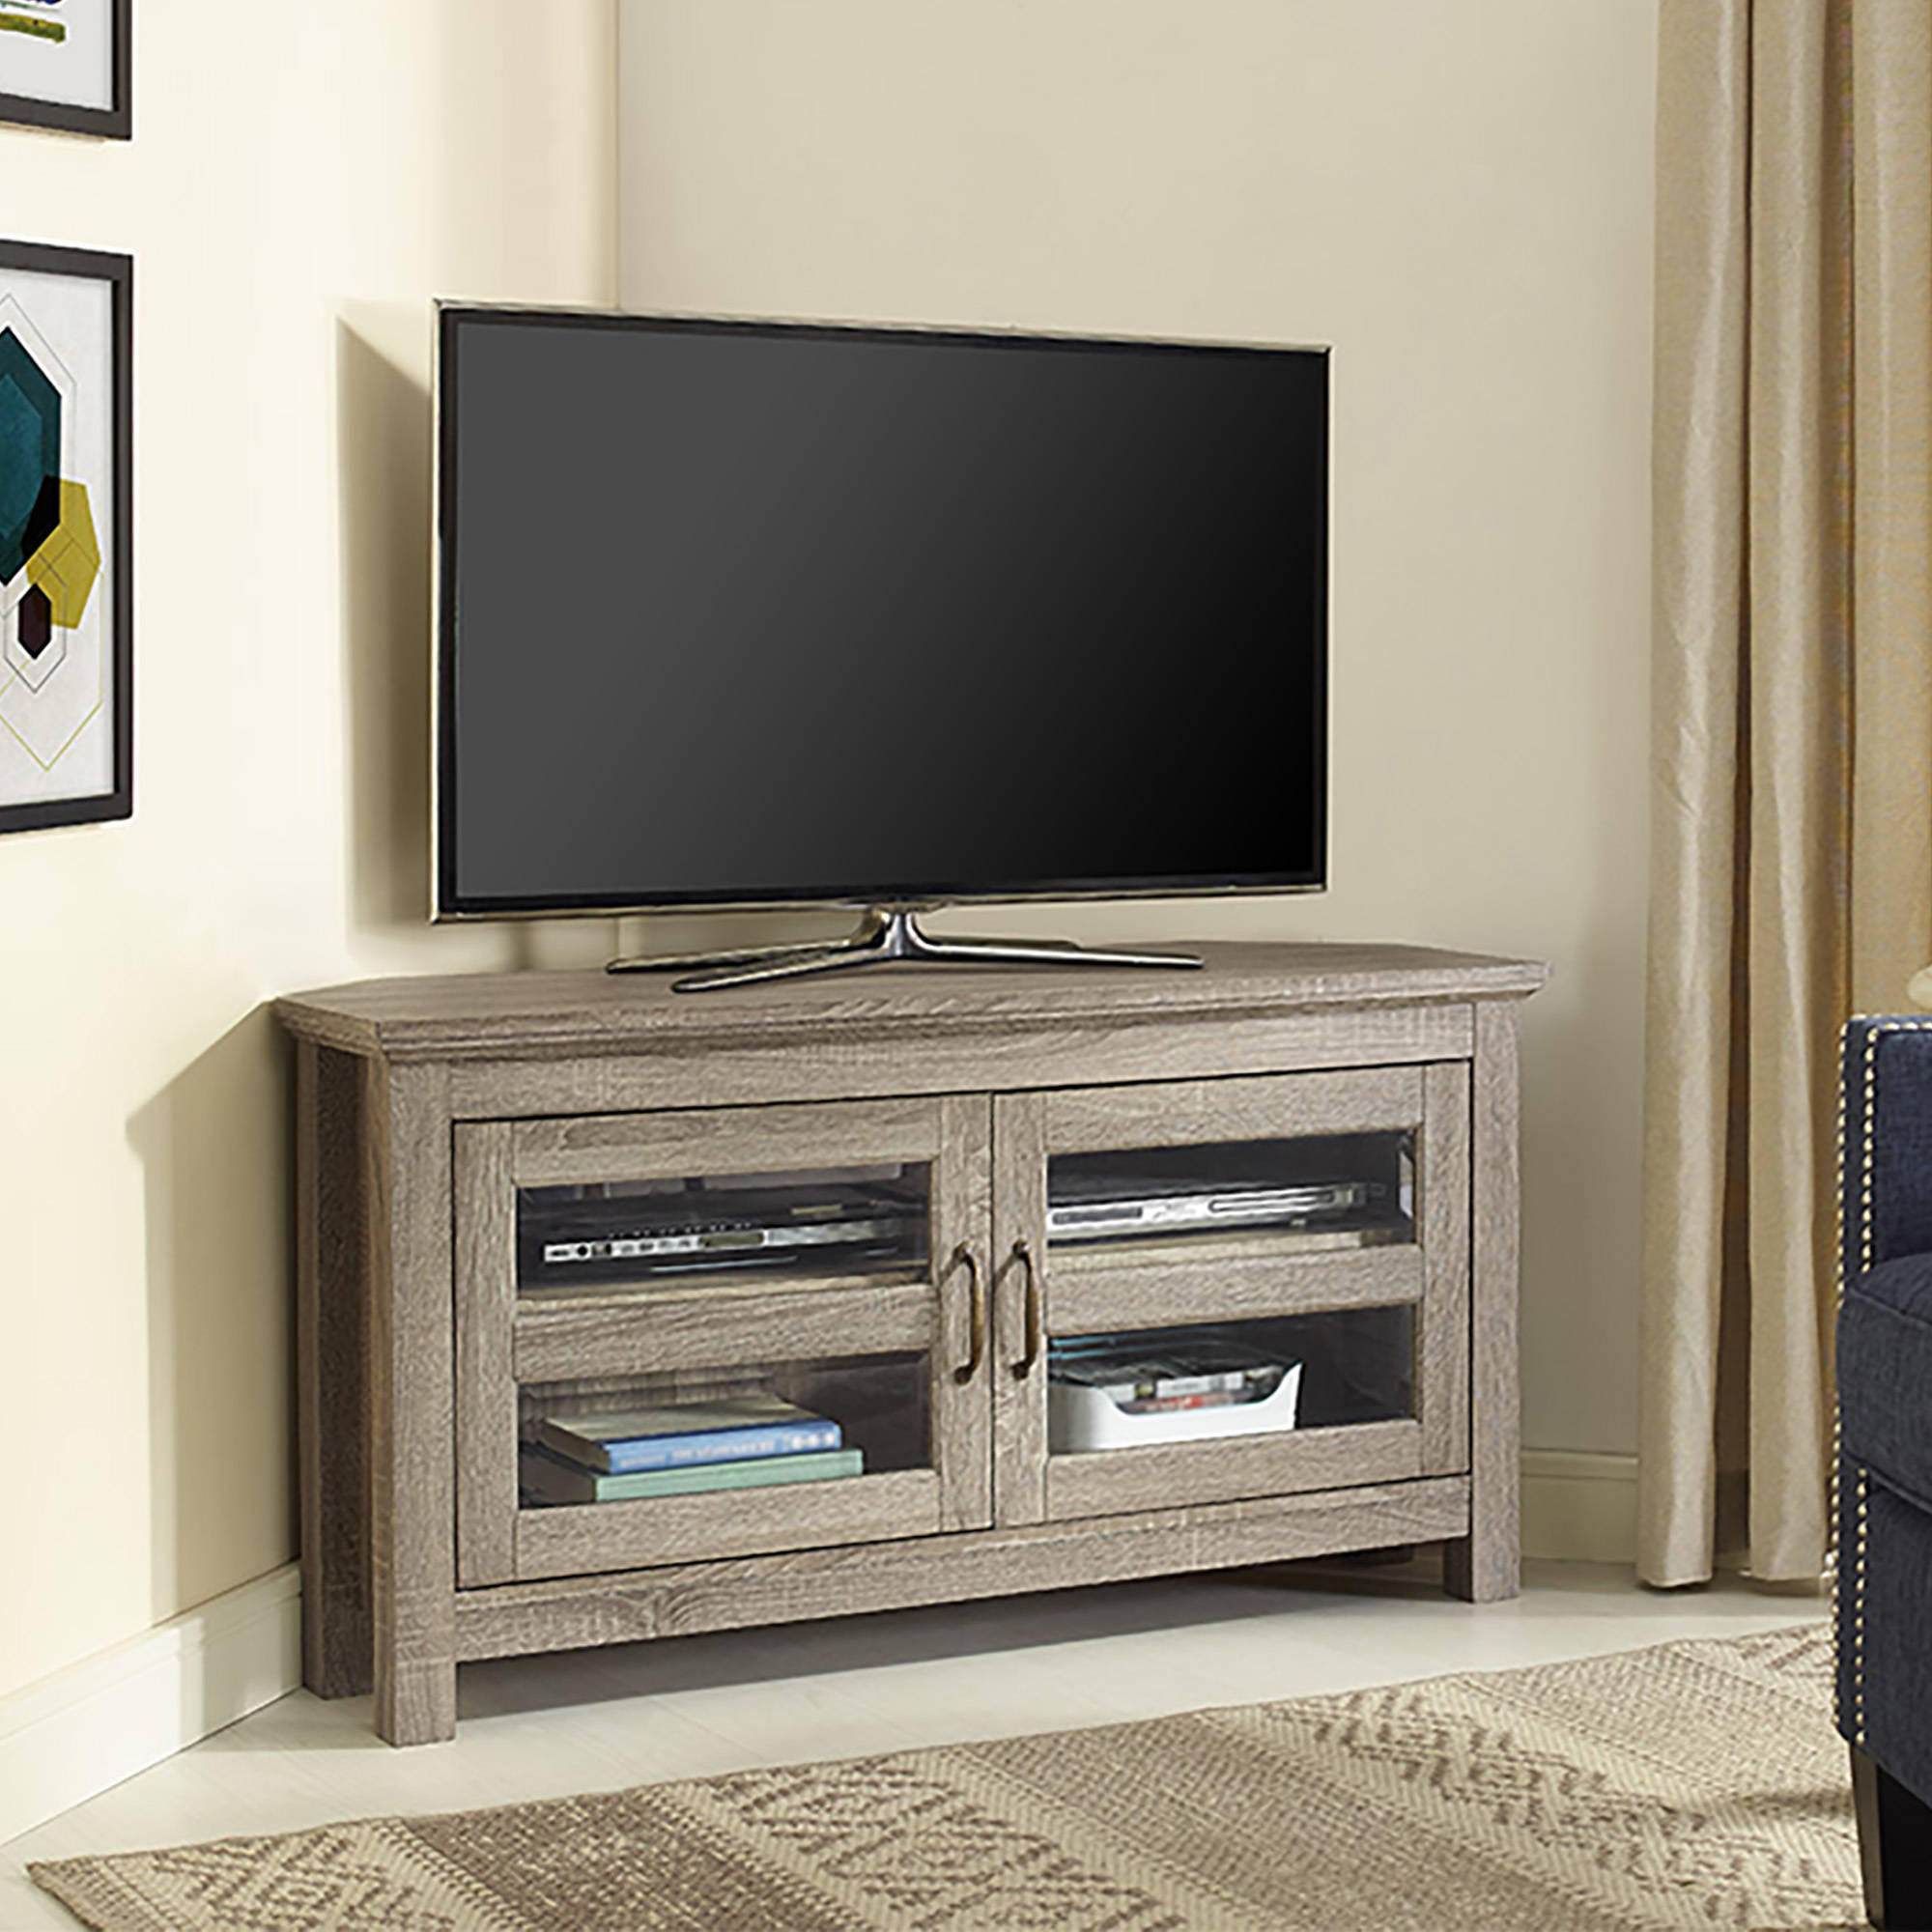 "Walker Edison Black Corner Tv Stand For Tvs Up To 48"", Multiple With Trendy Black Wood Corner Tv Stands (View 17 of 20)"